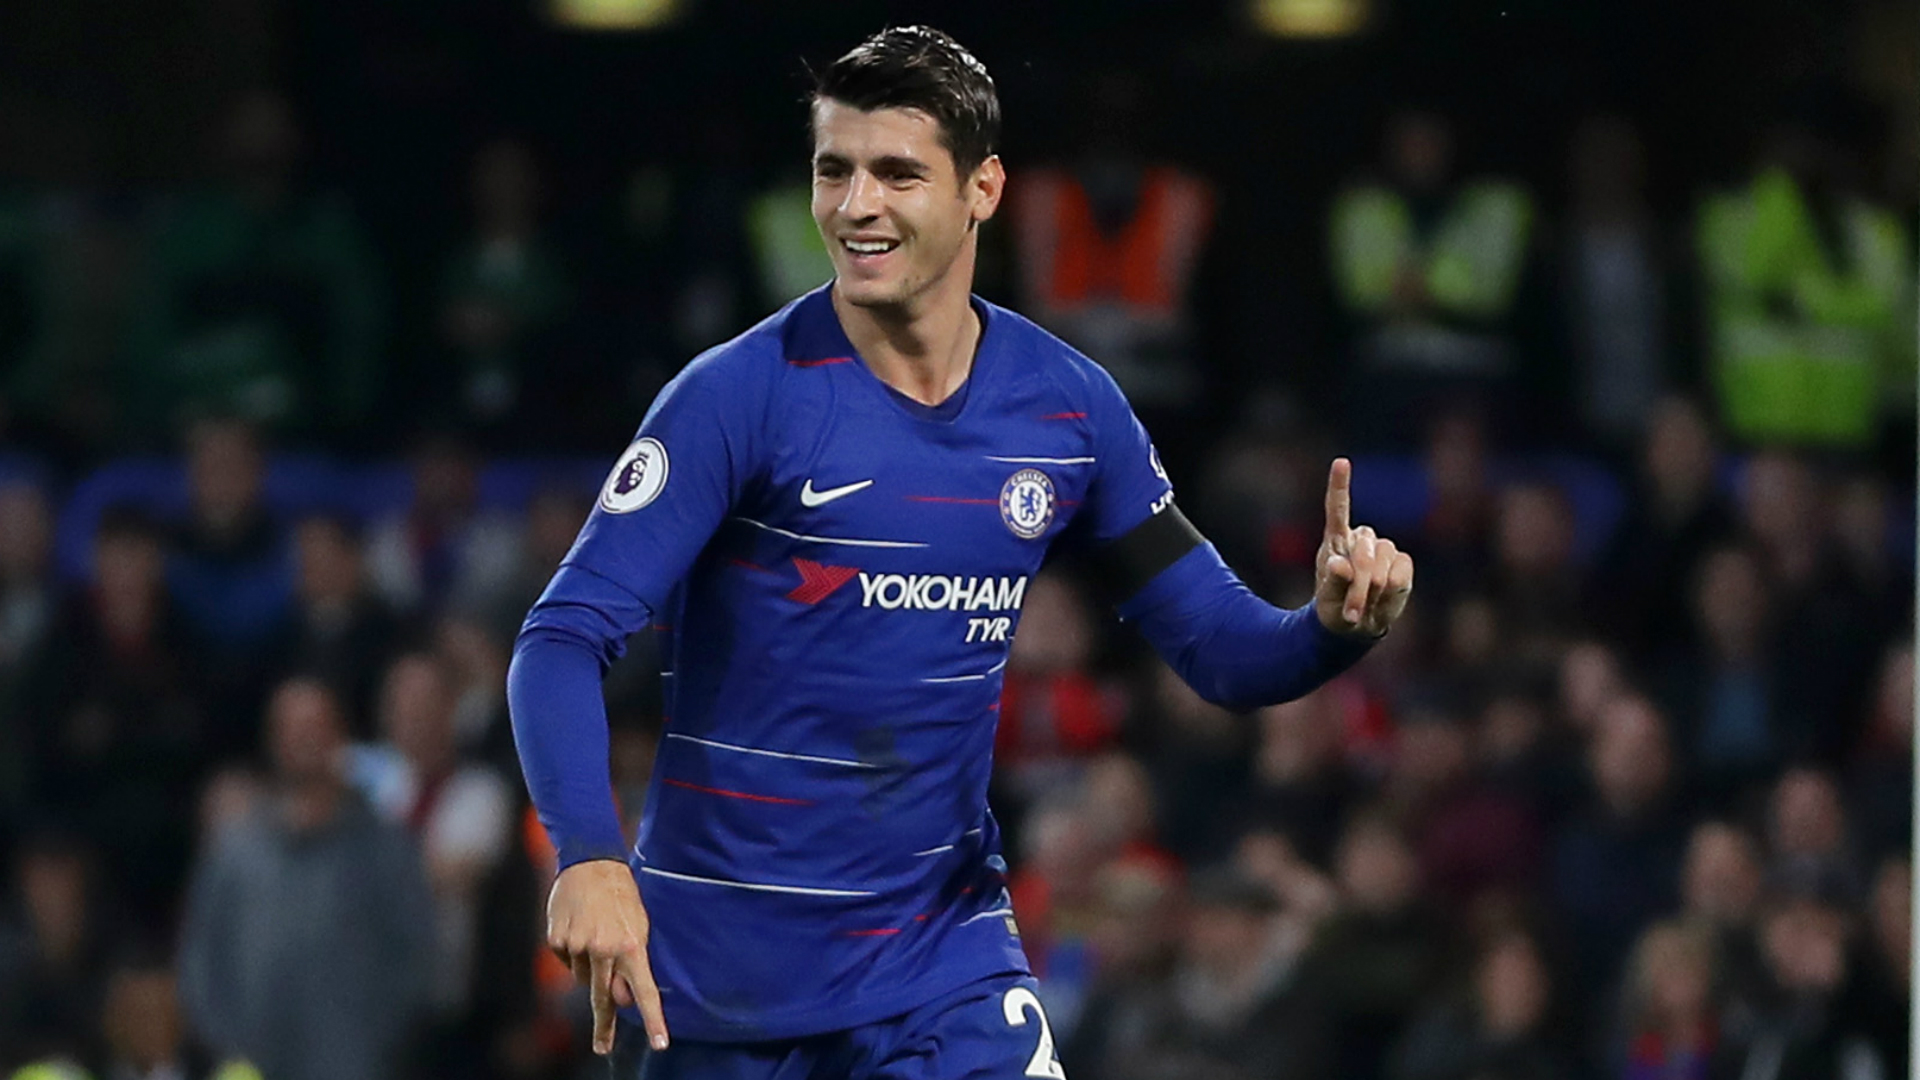 Morata's agent visits London to work on Chelsea exit